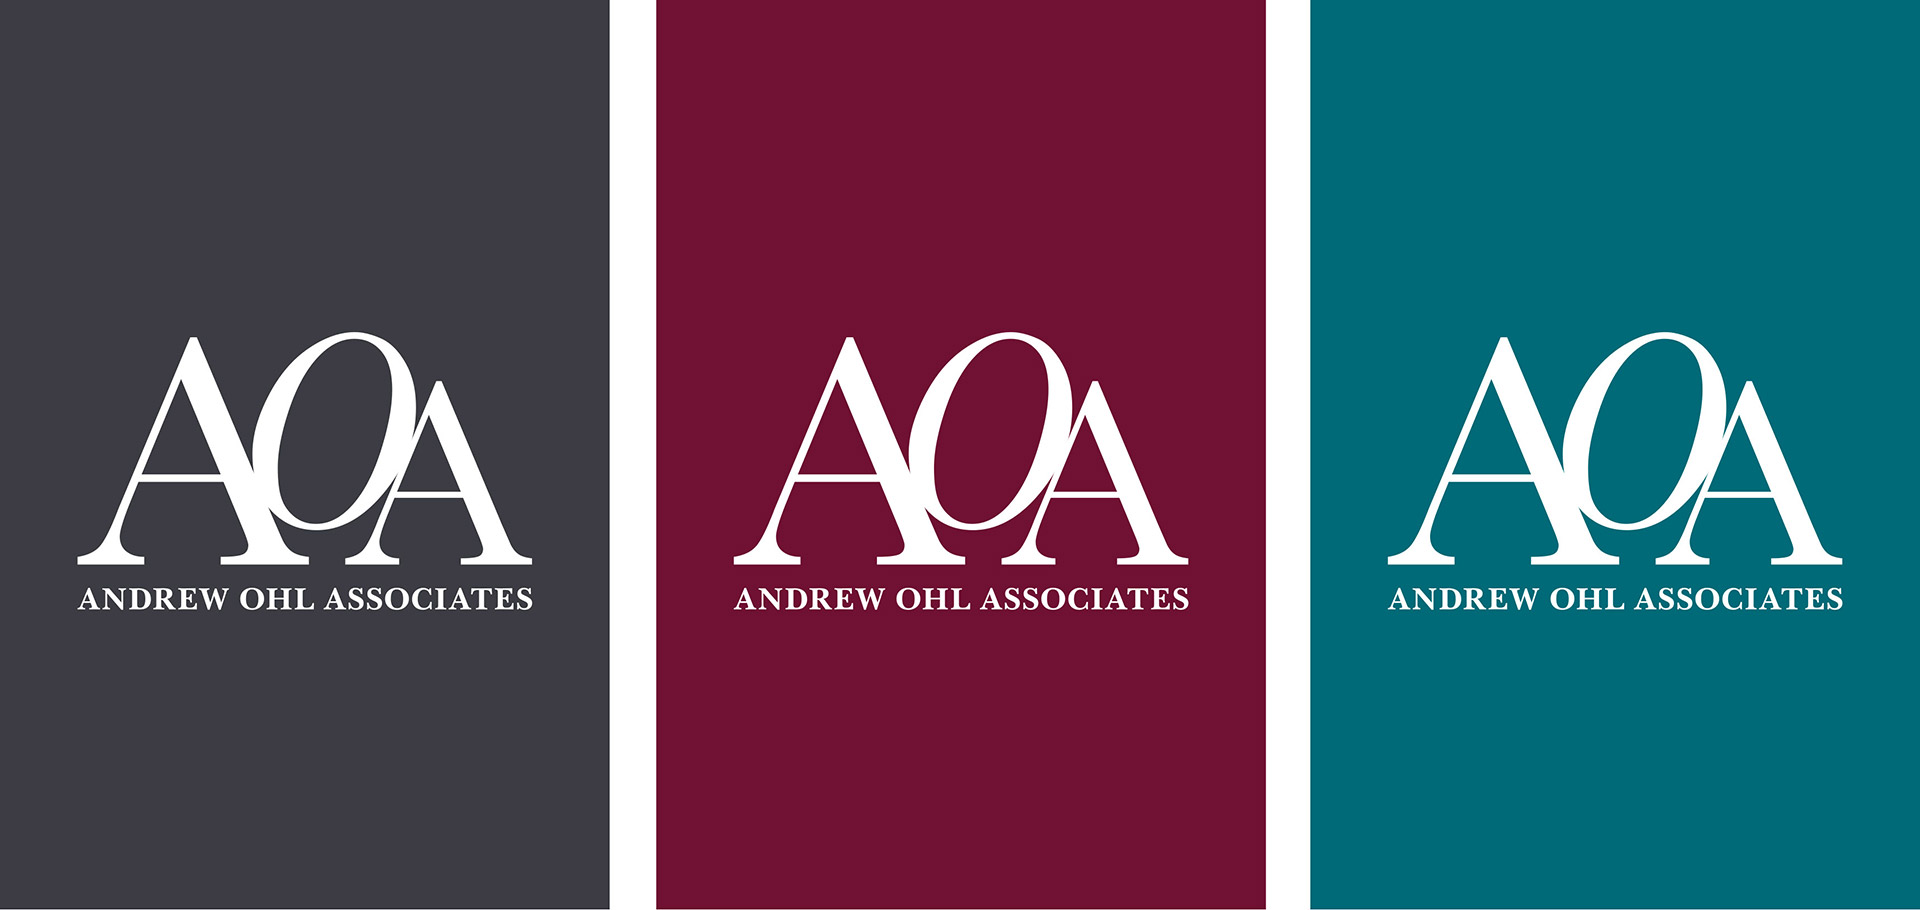 Andrew Ohl Associates visual identity by Irish Butcher